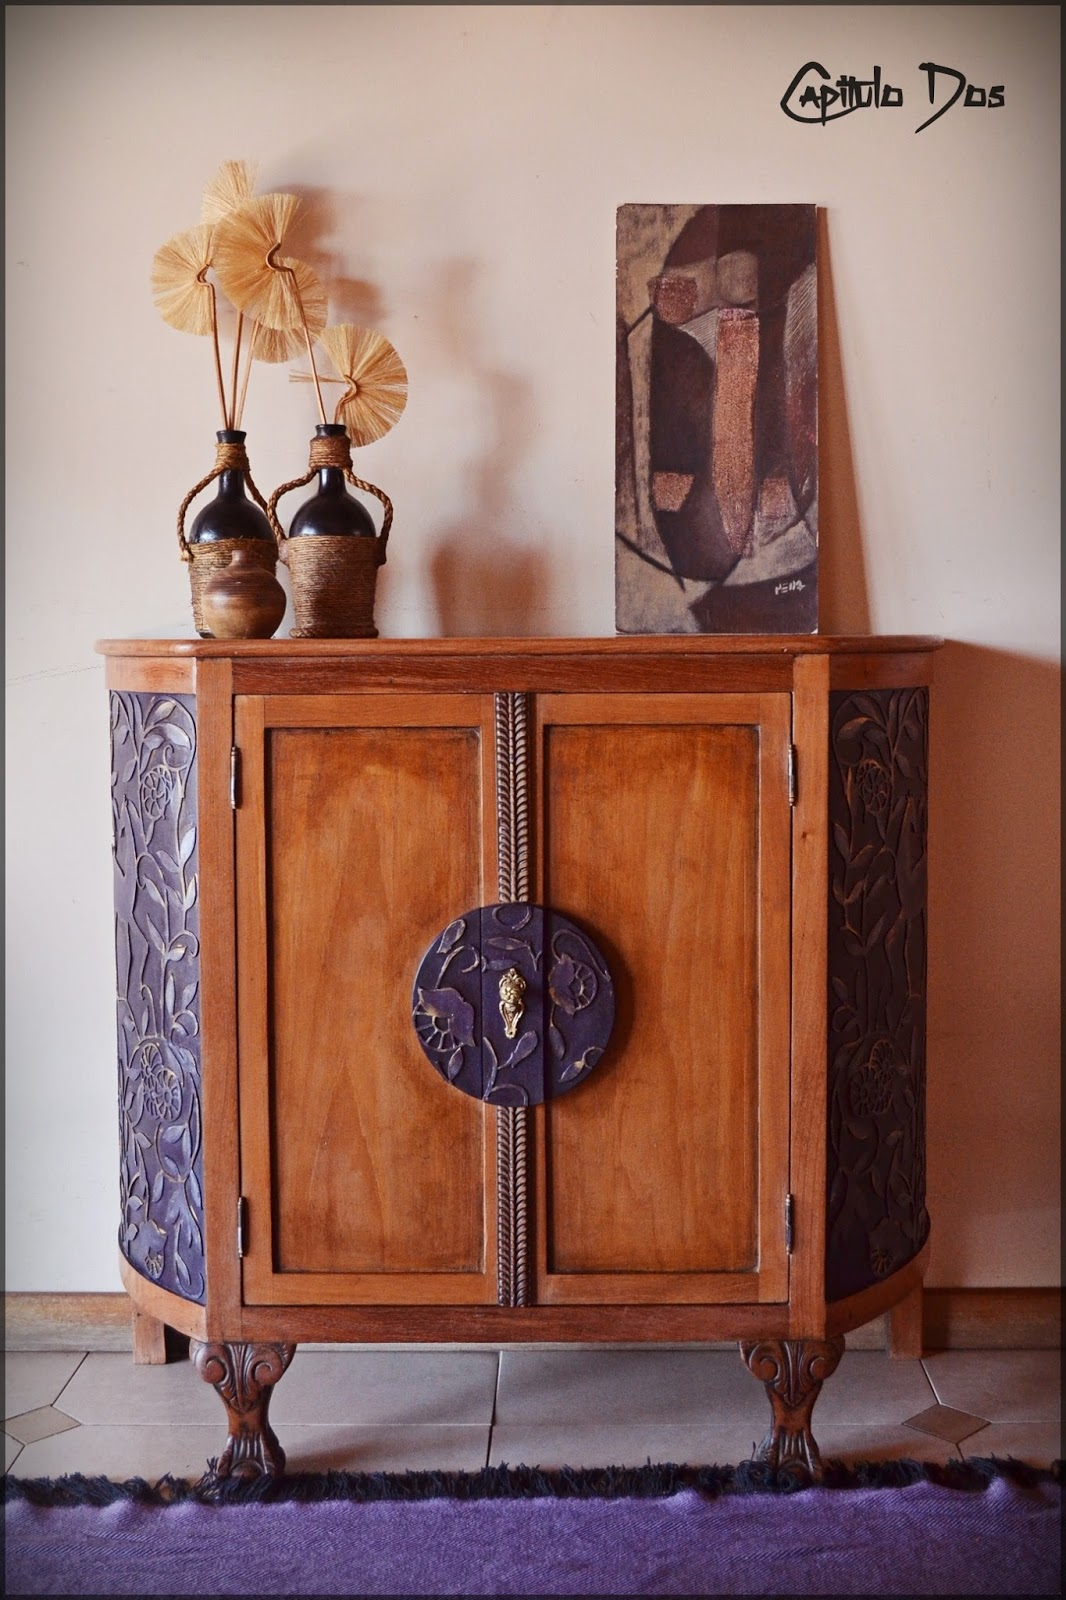 Capitulo dos aire oriental for Muebles japoneses antiguos